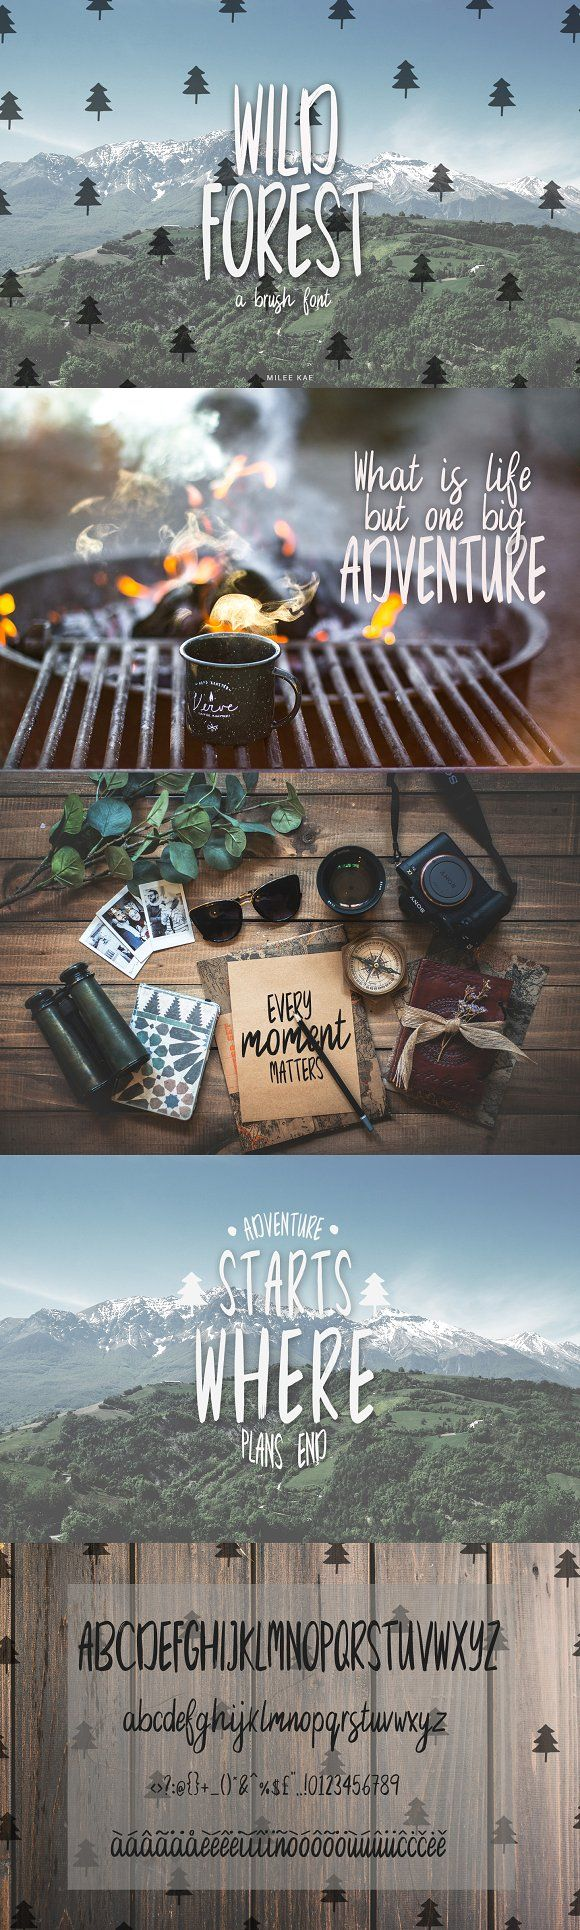 Wild Forest a modern brush font by Milee Kae on @creativemarket